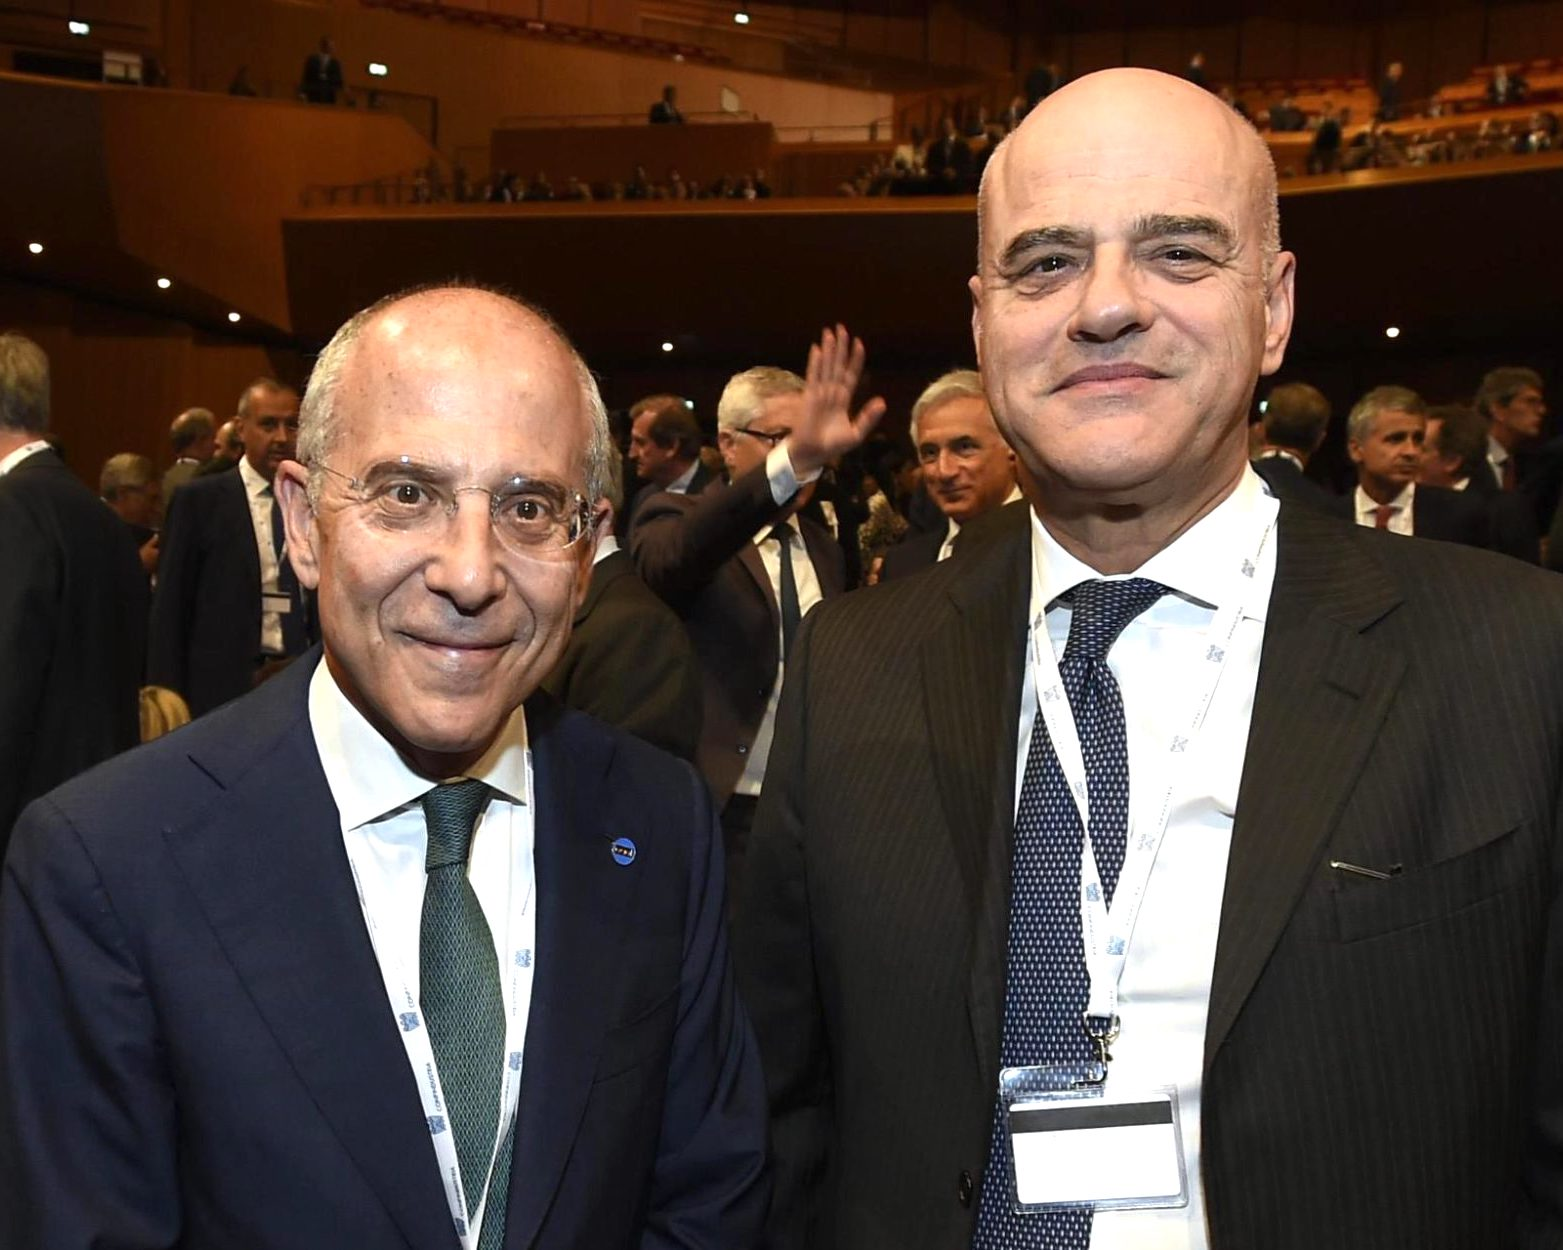 Eni teams up with Enel to build green-hydrogen projects at Italian refineries